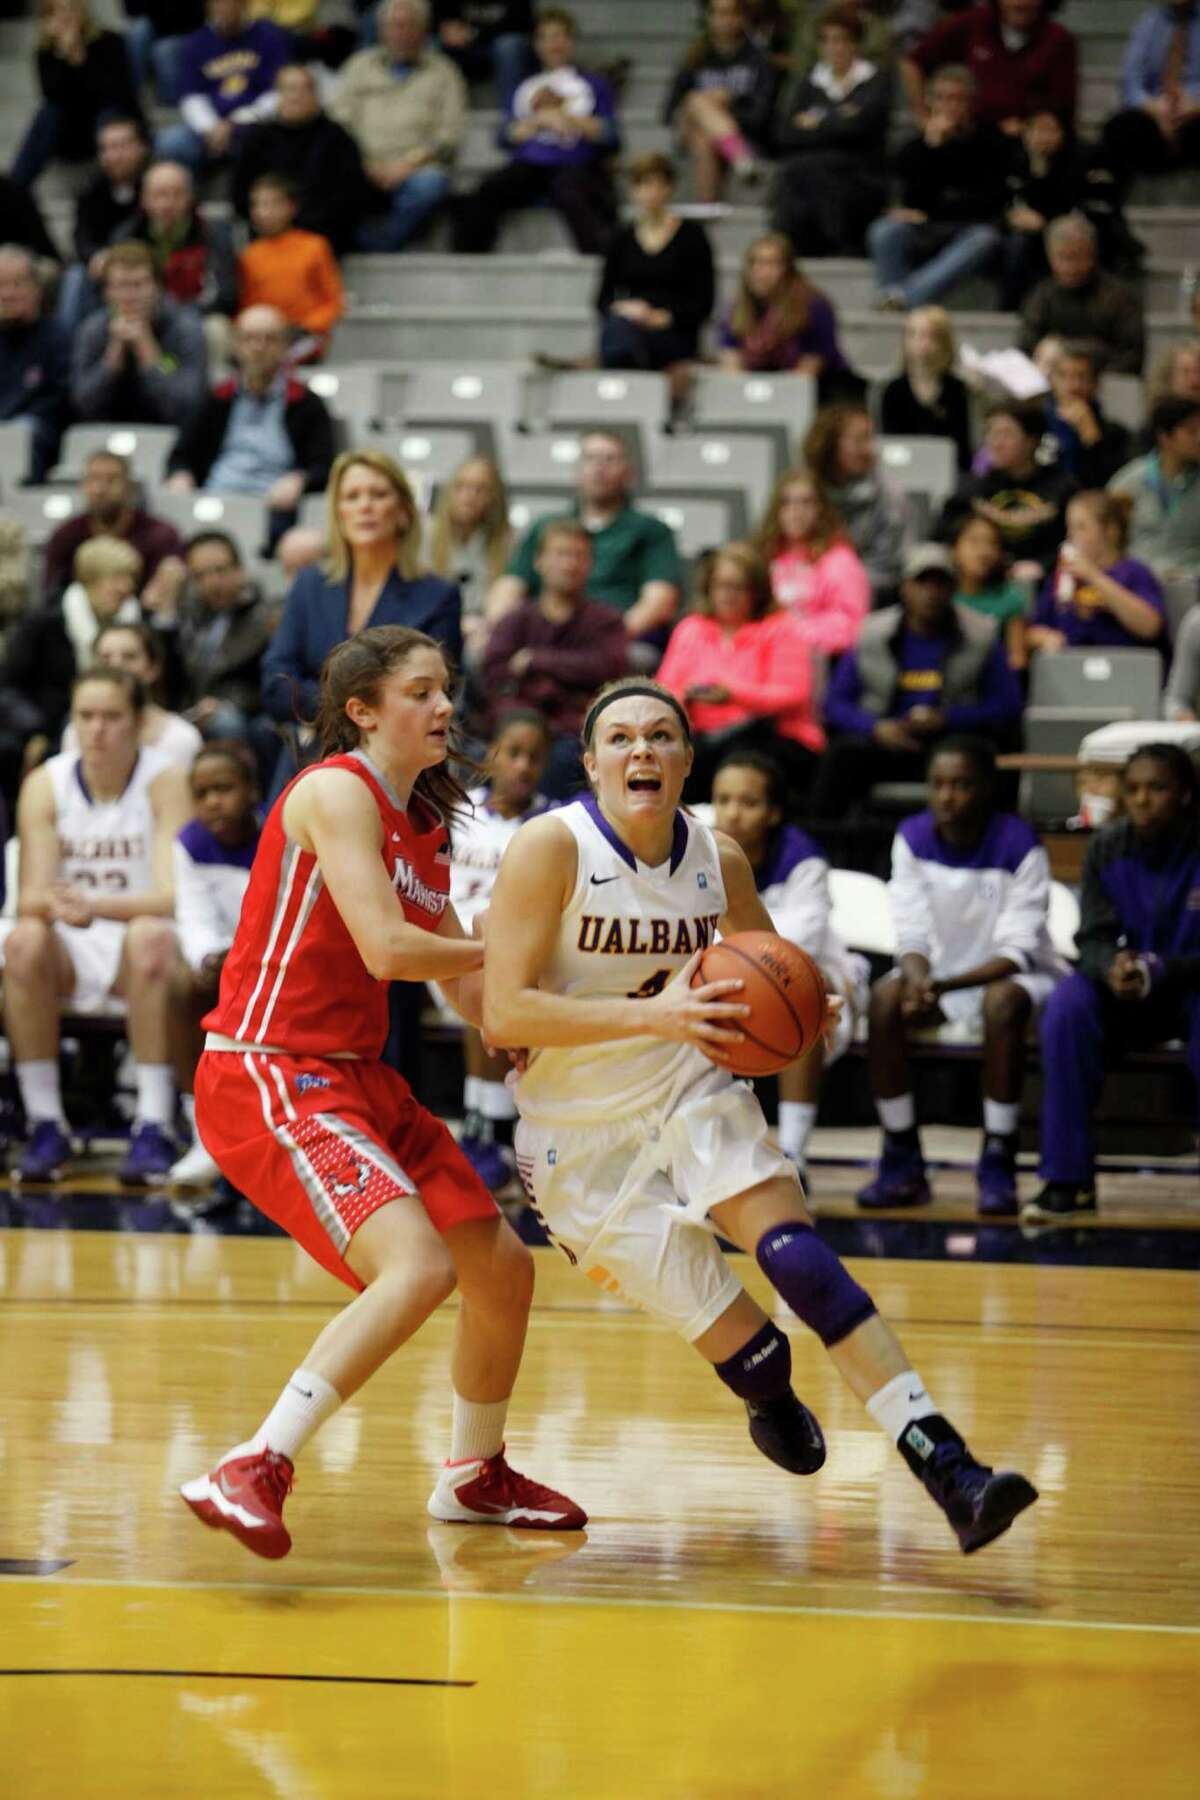 UAlbanyOs Sarah Royals aggressively goes in for a layup during the womenOs college basketball game against Marist at the SEFCU Arena on Thursday, Nov. 14, 2013 in Albany, N.Y. (Dan Little / Special to the Times Union)